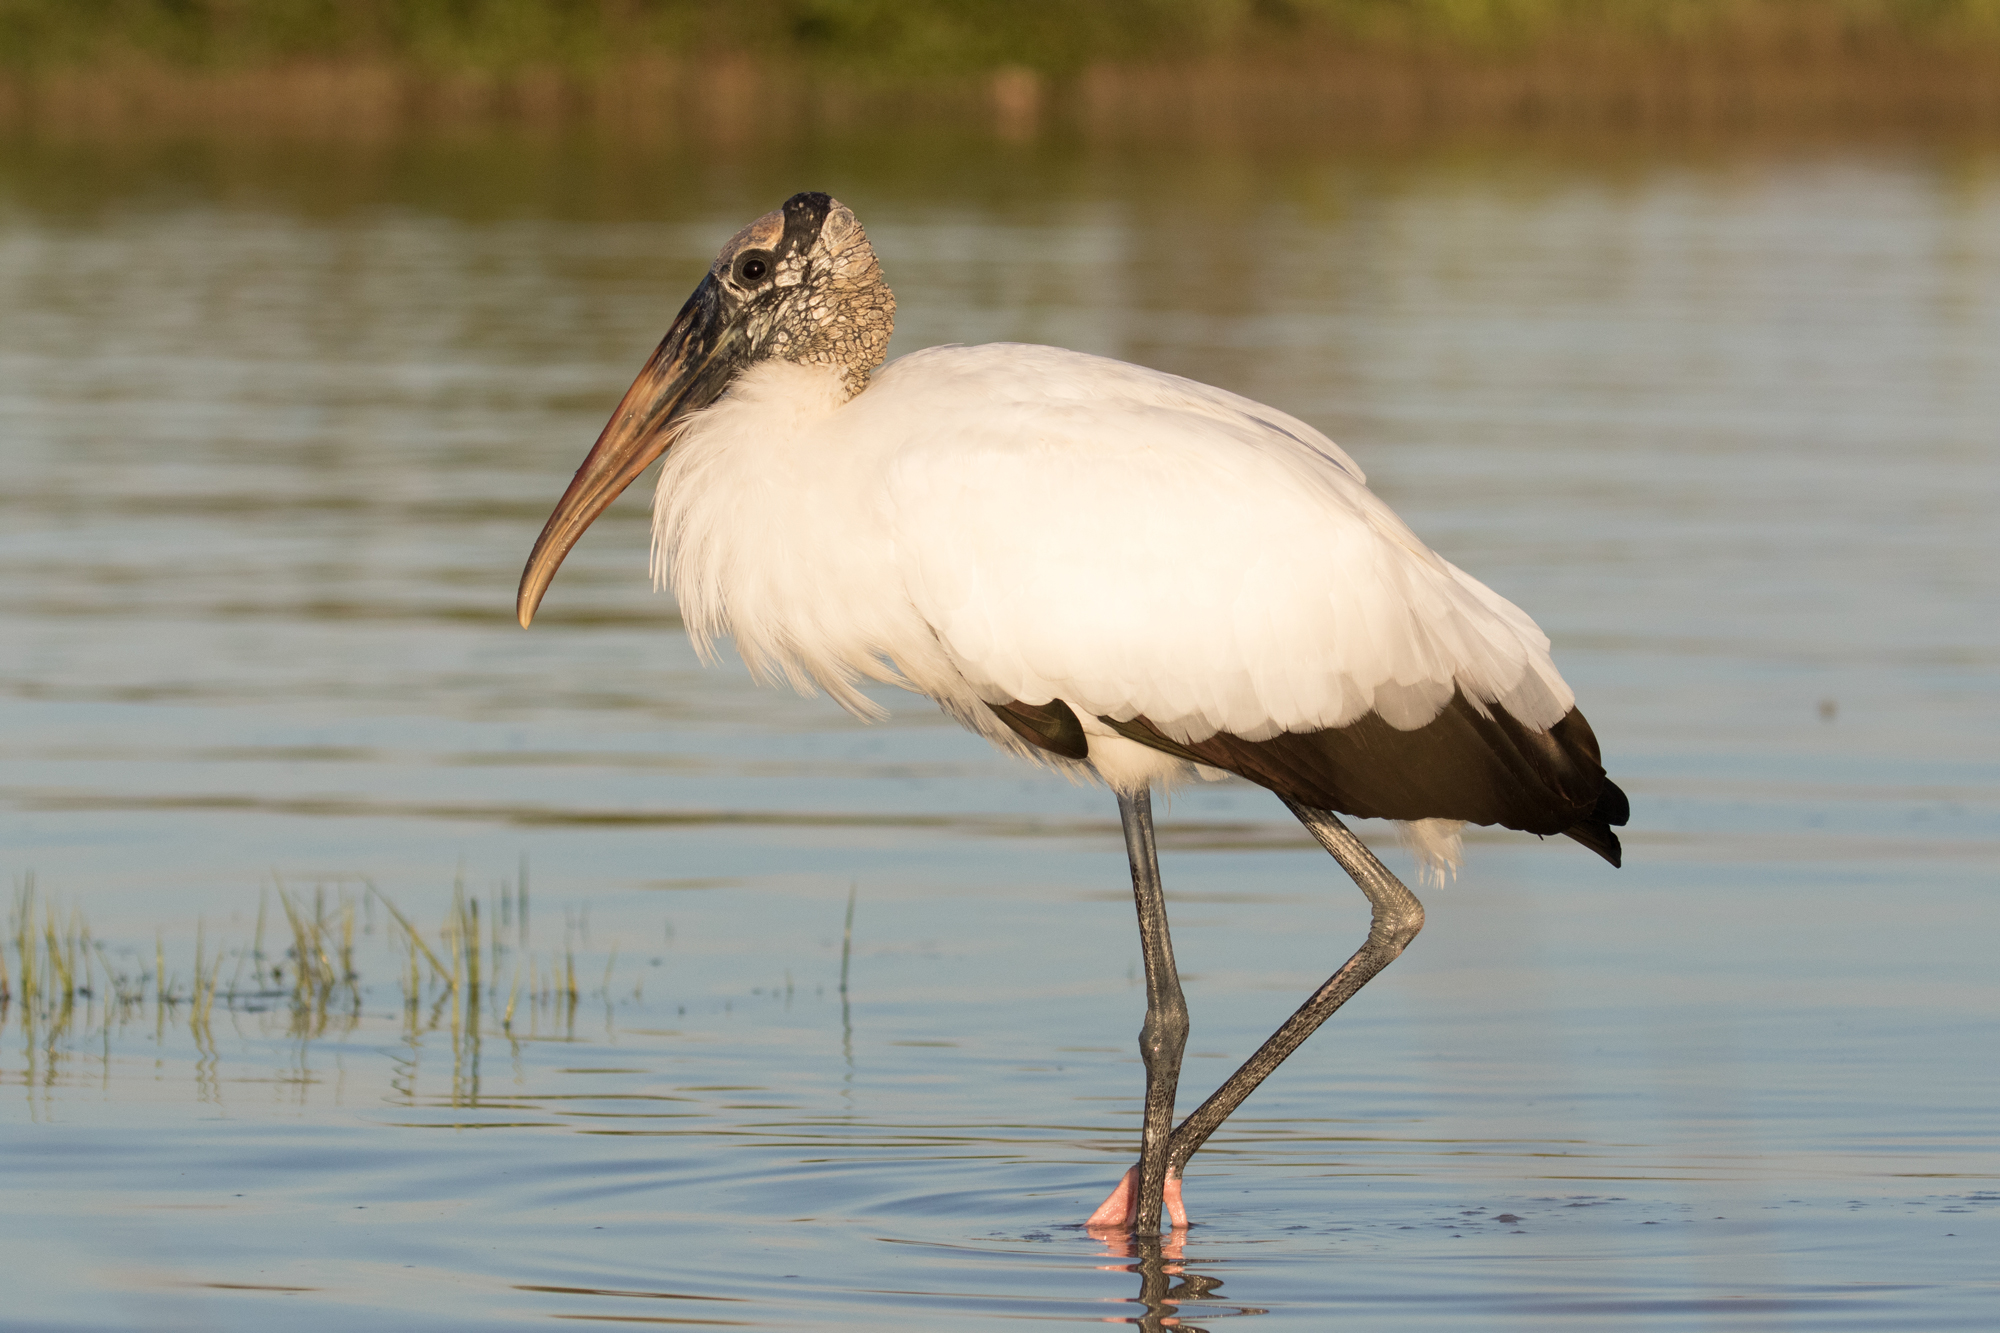 Wood Stork - (Mycteria americana) is an endangered species that inhabits the Florida Everglades